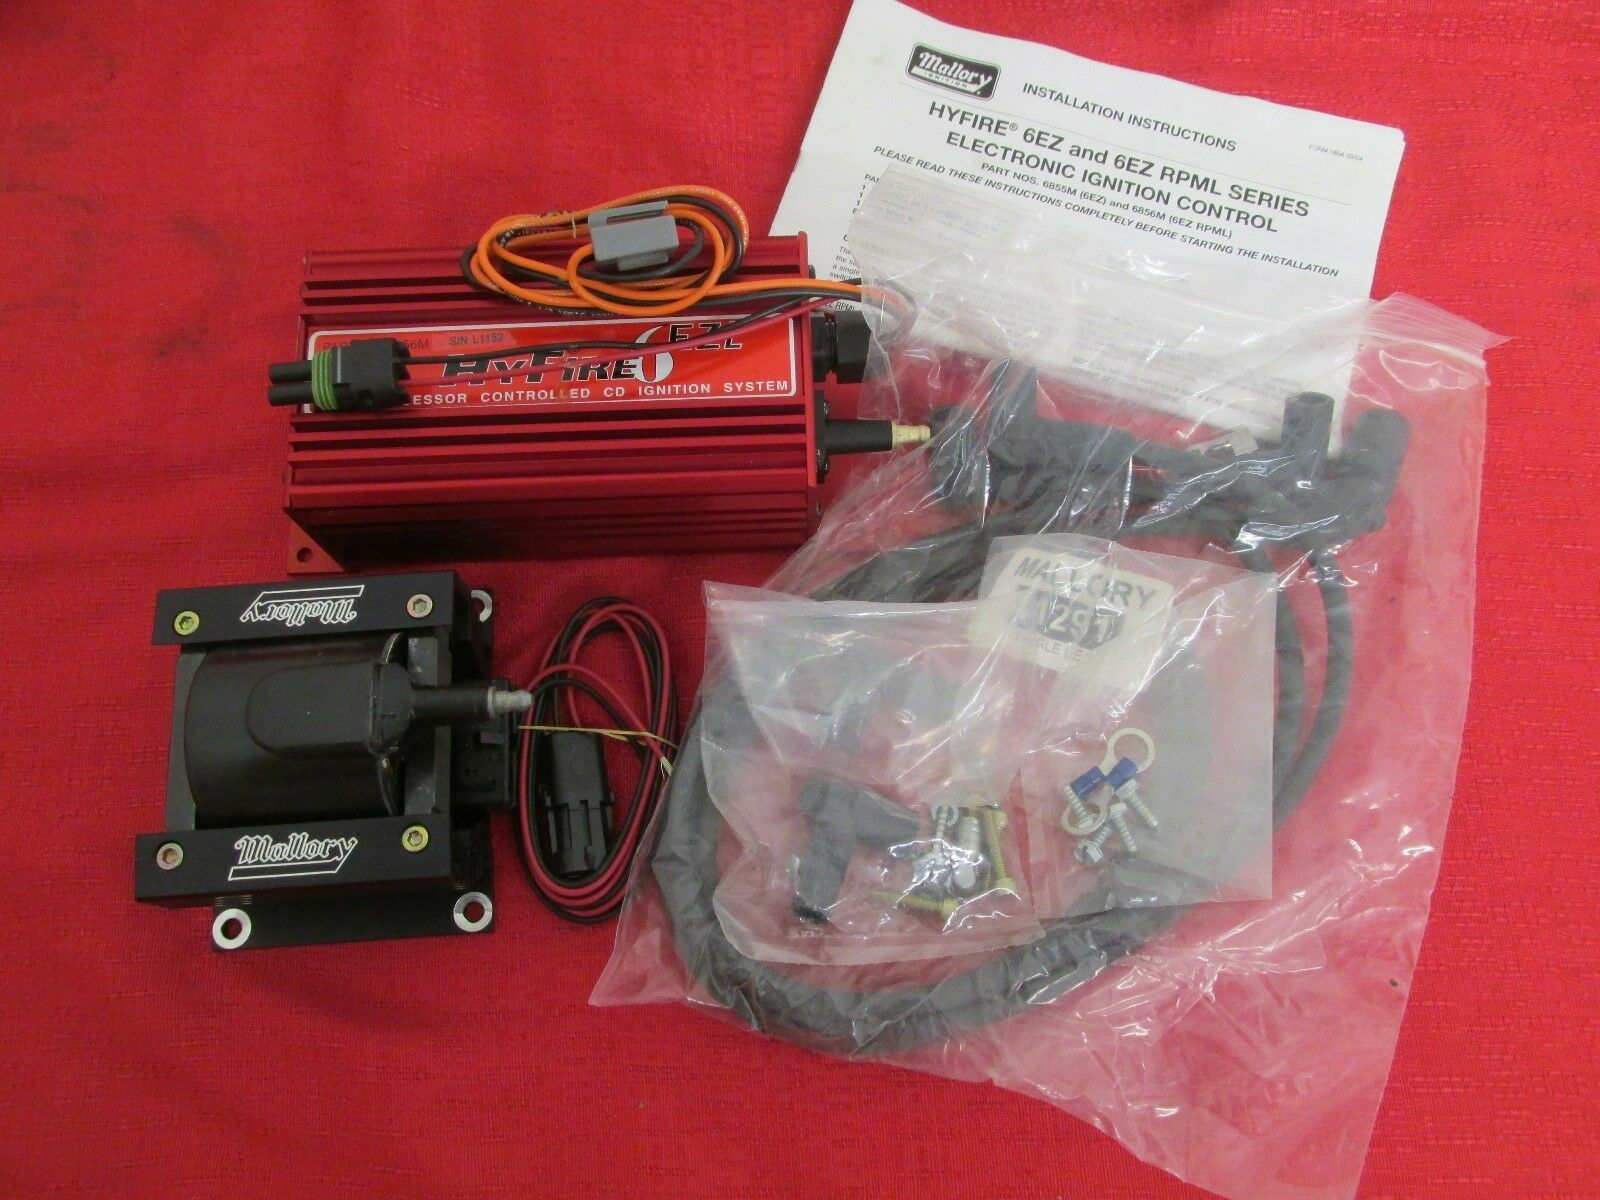 Mallory 6856m hyfire vi single stage digital cd ignition kit ebay resntentobalflowflowcomponenttechnicalissues publicscrutiny Image collections